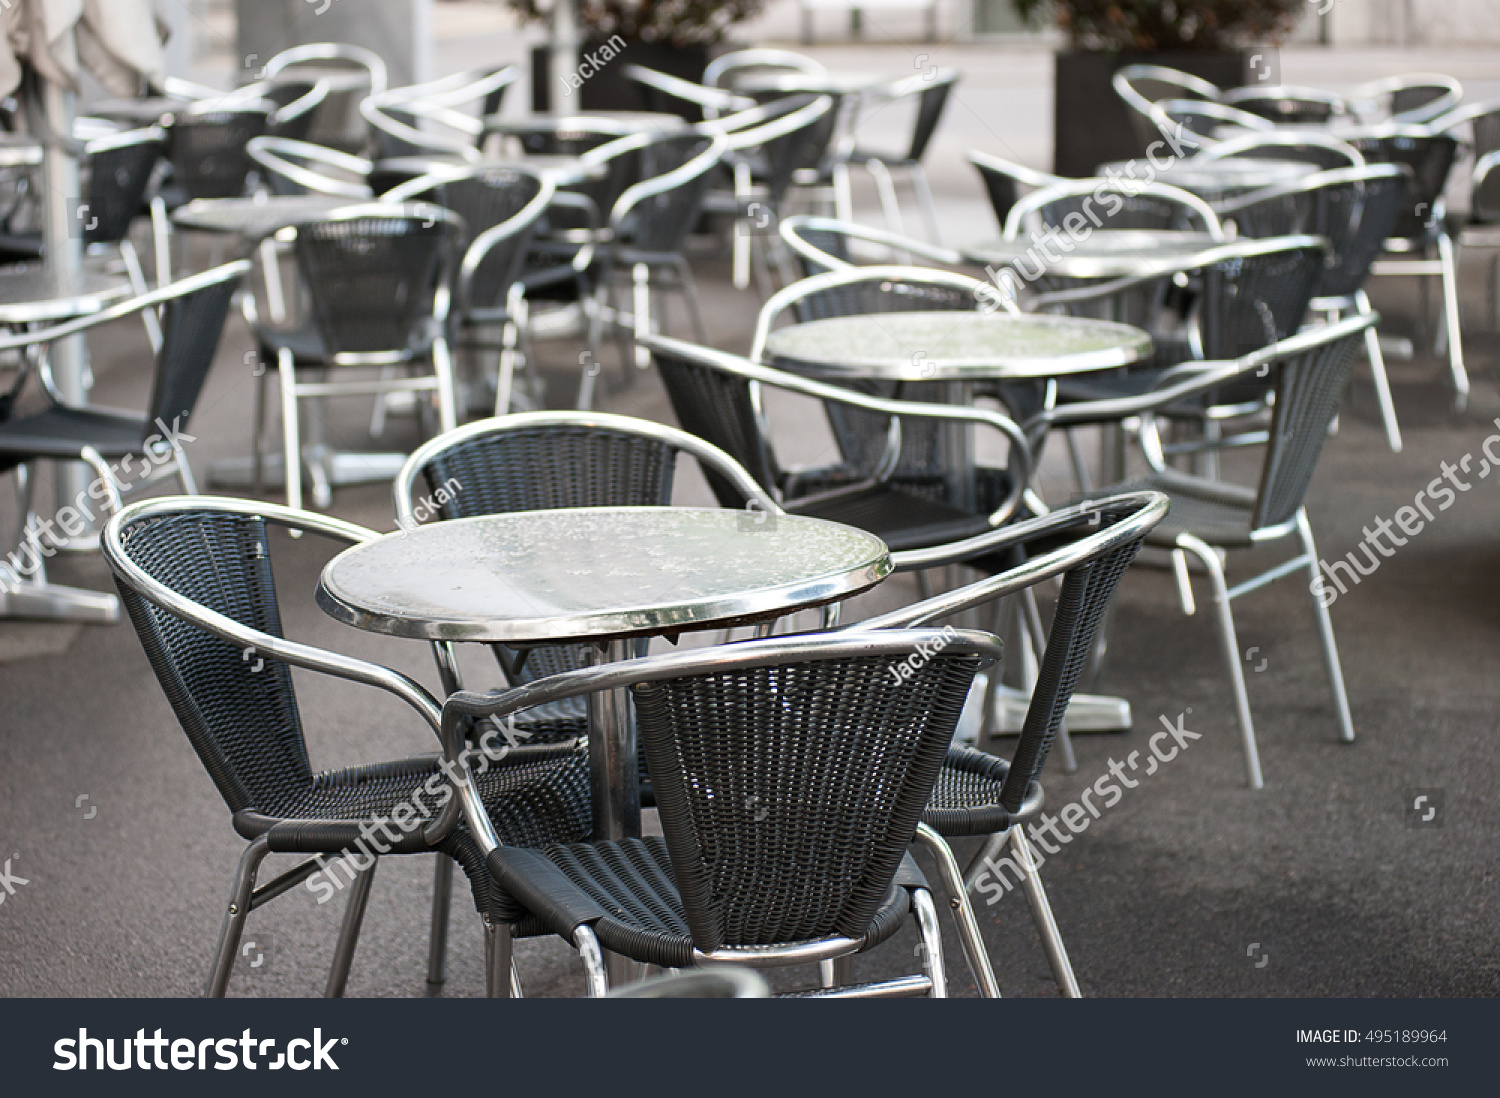 Outdoor Coffee Shop Metal Tables Chairs Stock Photo Edit Now 495189964